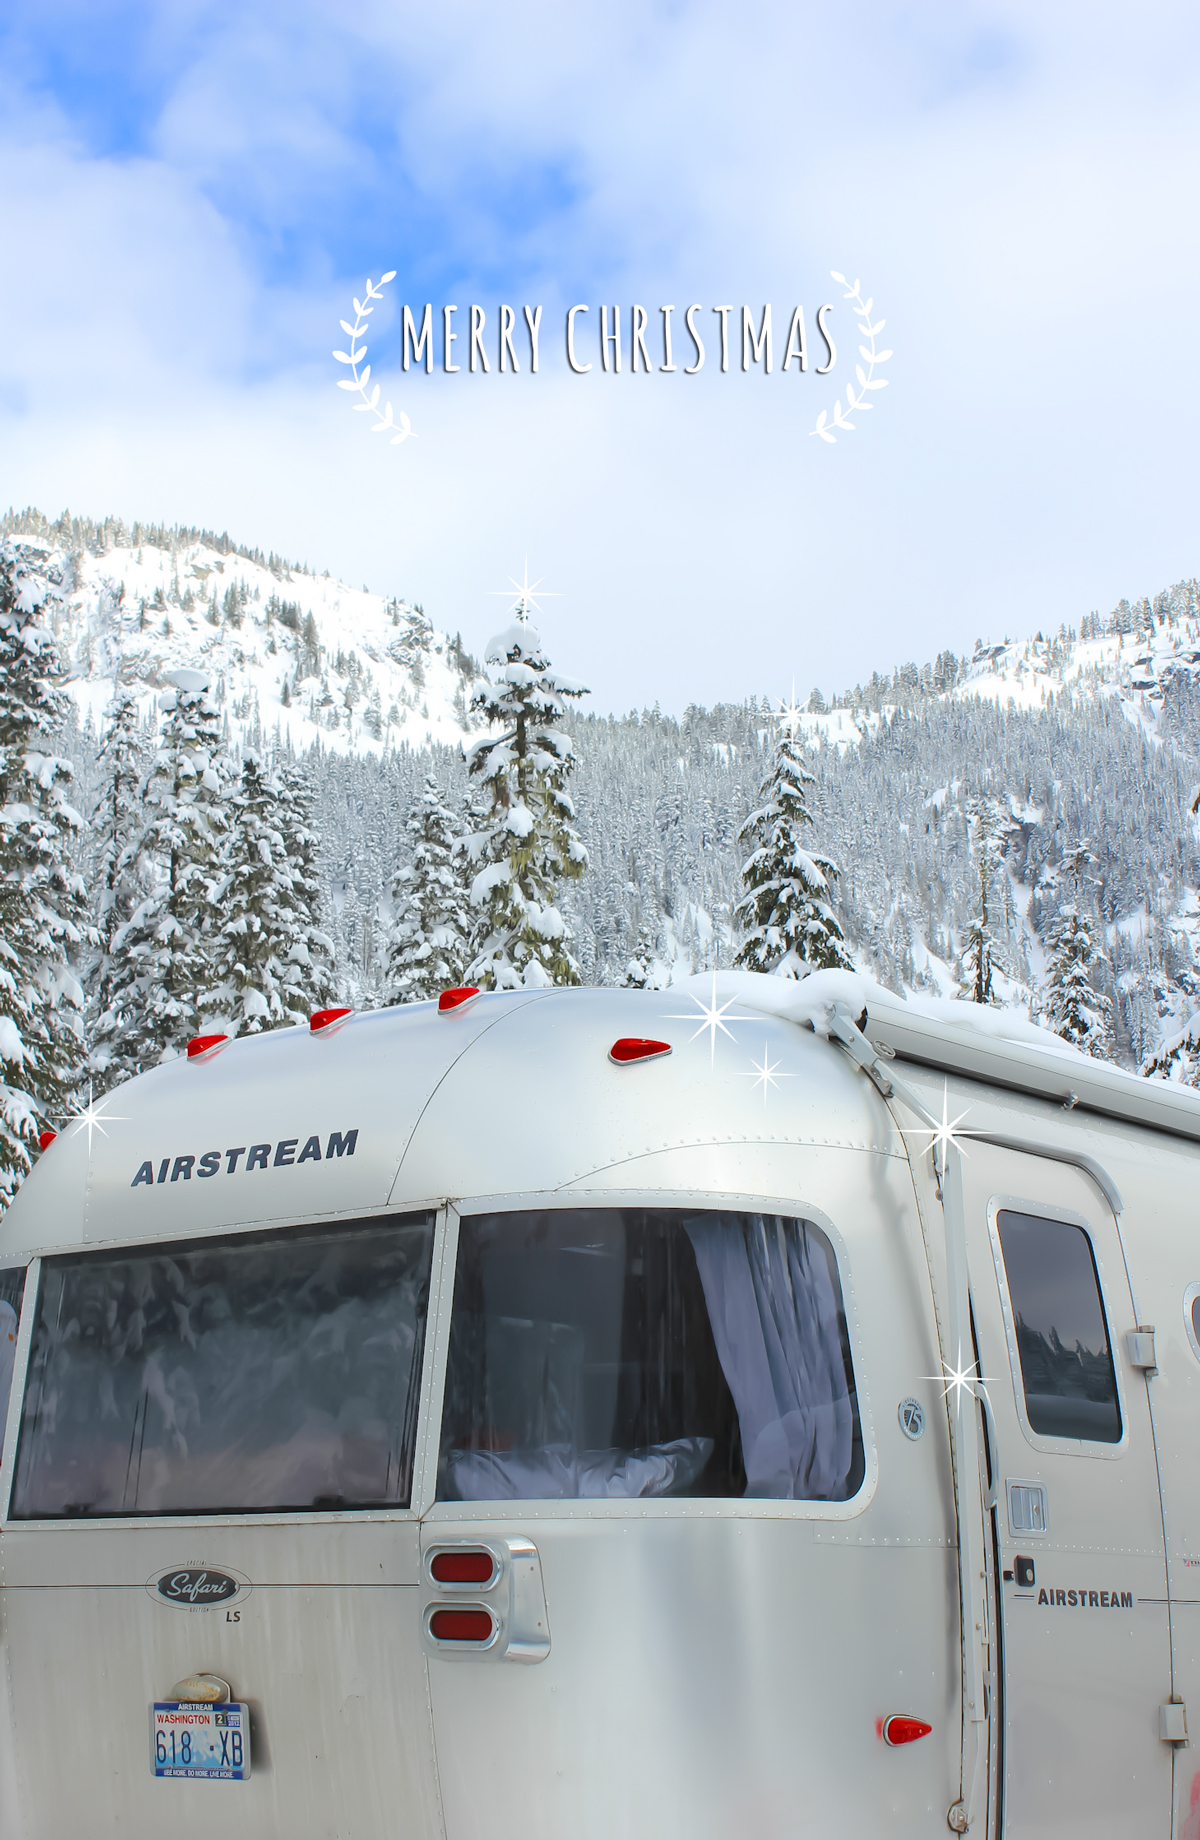 Airstream at Alpental Ski Area